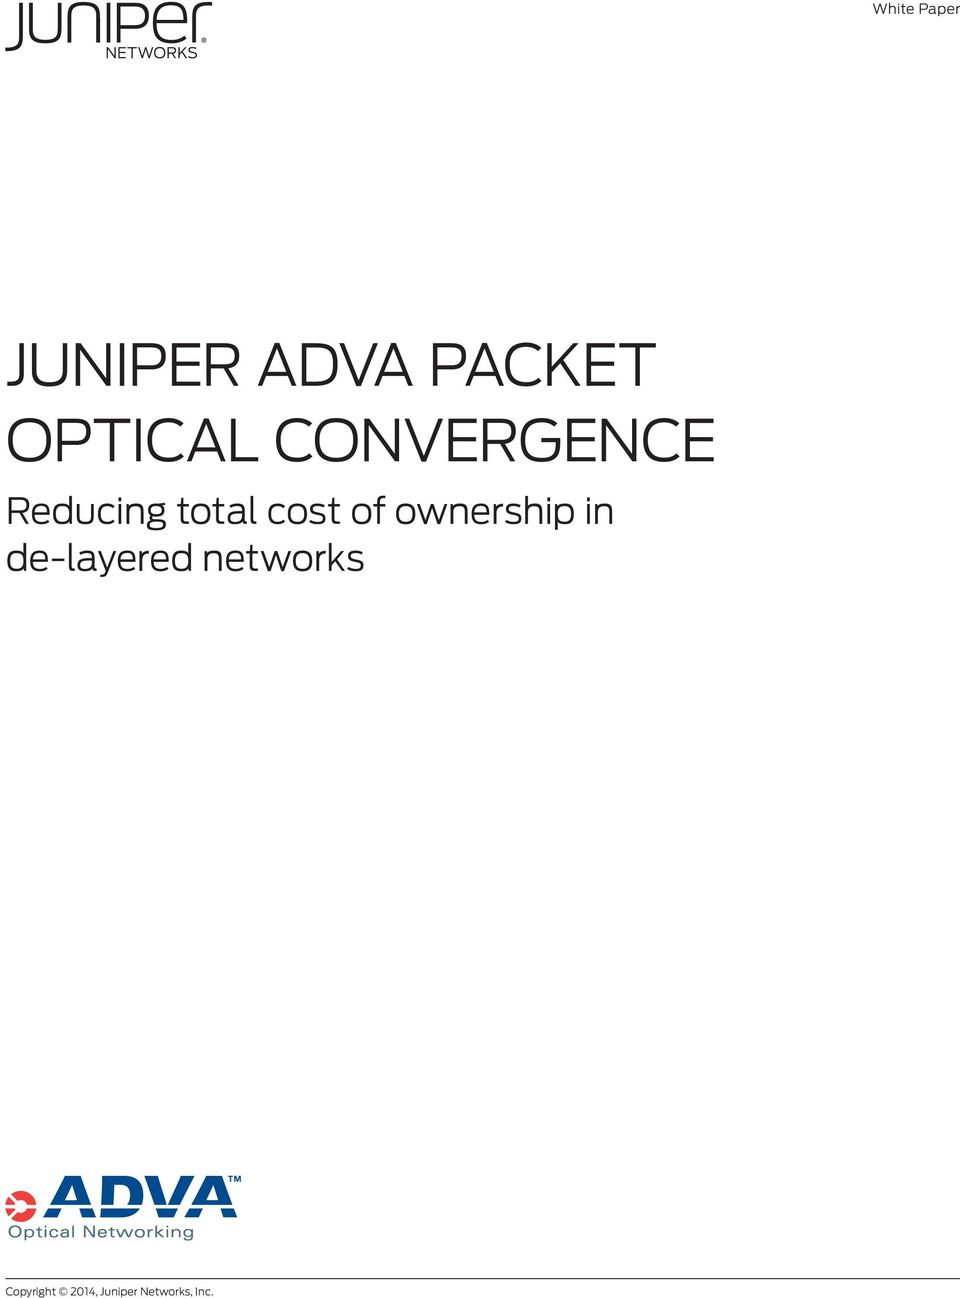 JUNIPER ADVA PACKET OPTICAL CONVERGENCE - PDF